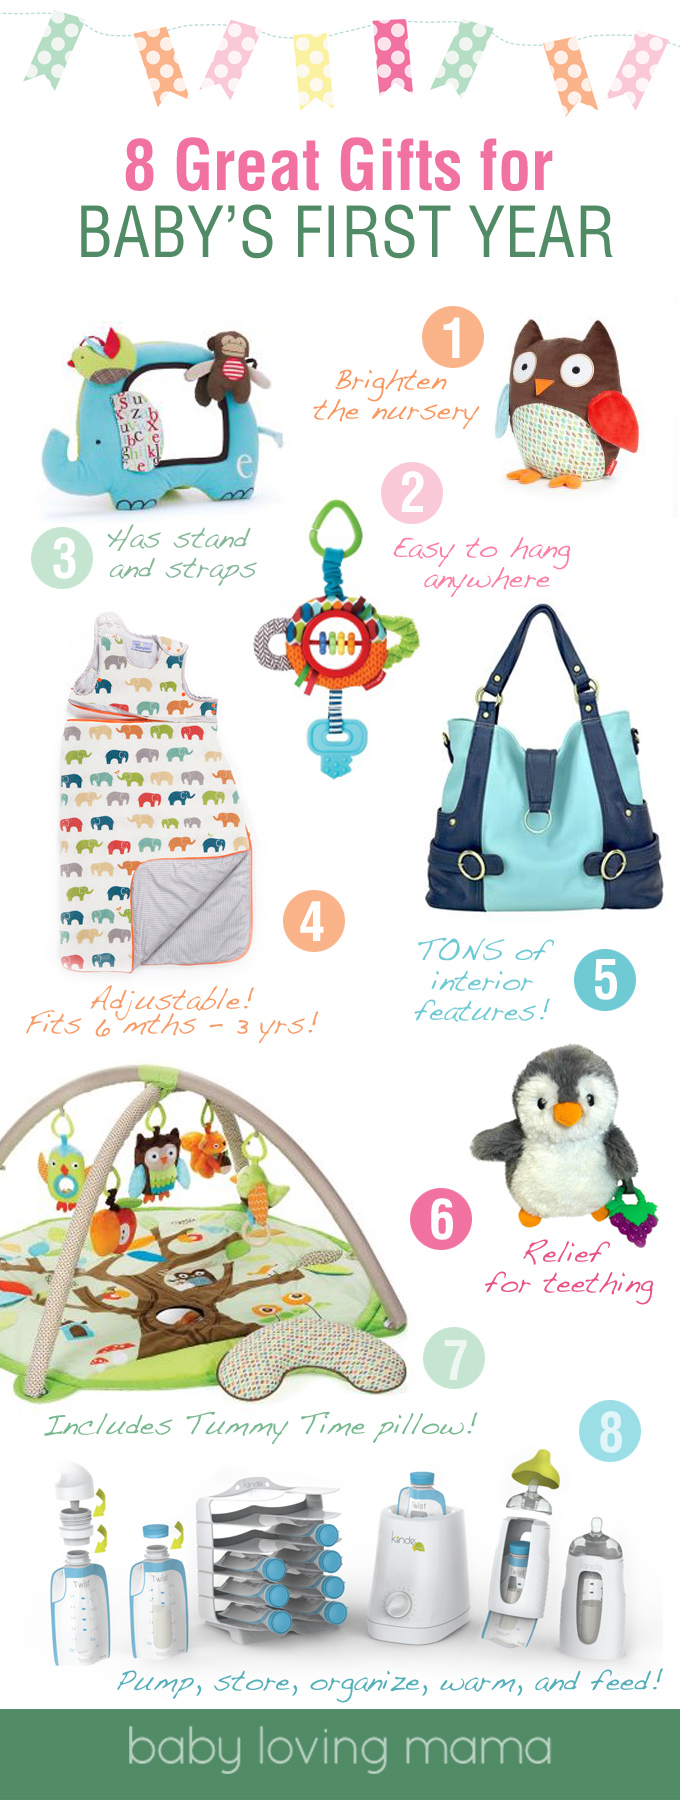 8 Great Gifts for Baby's First Year